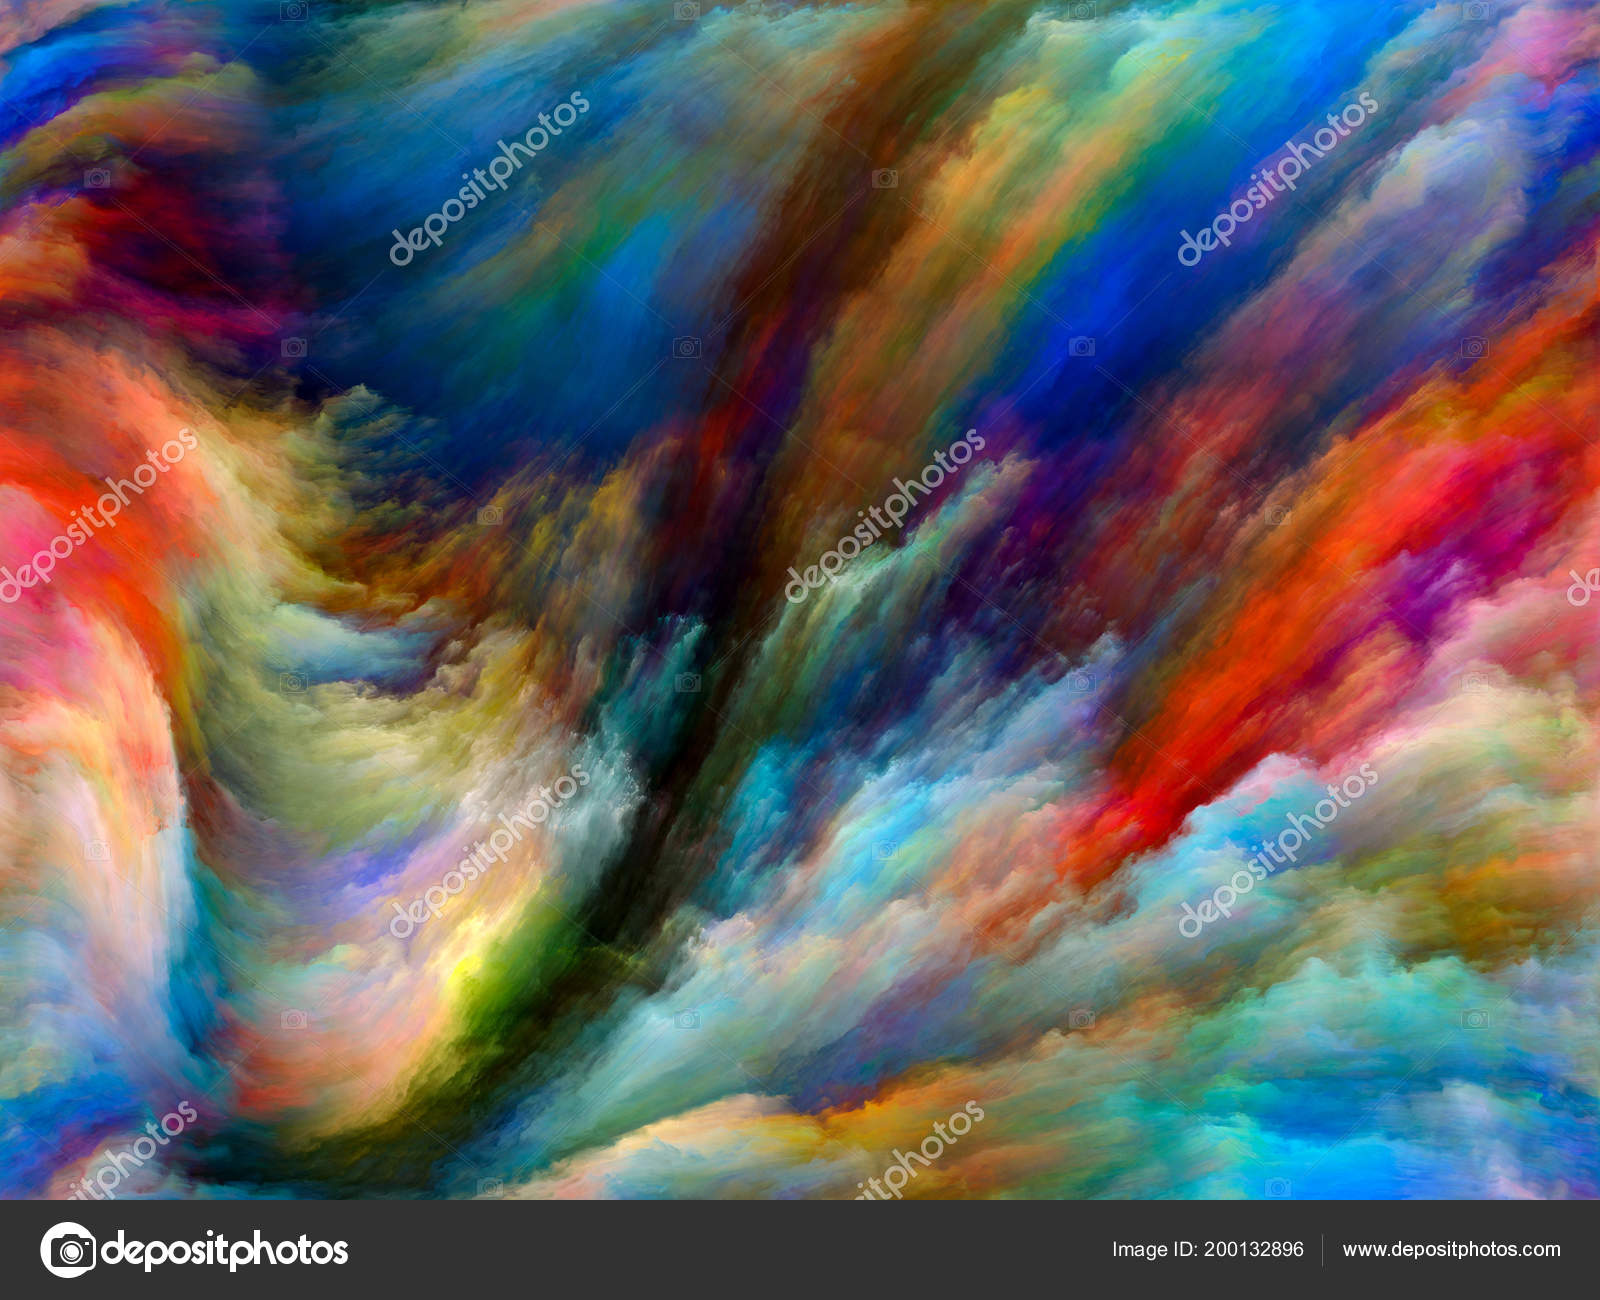 Design Made Of Colorful Paint In Motion On Canvas To